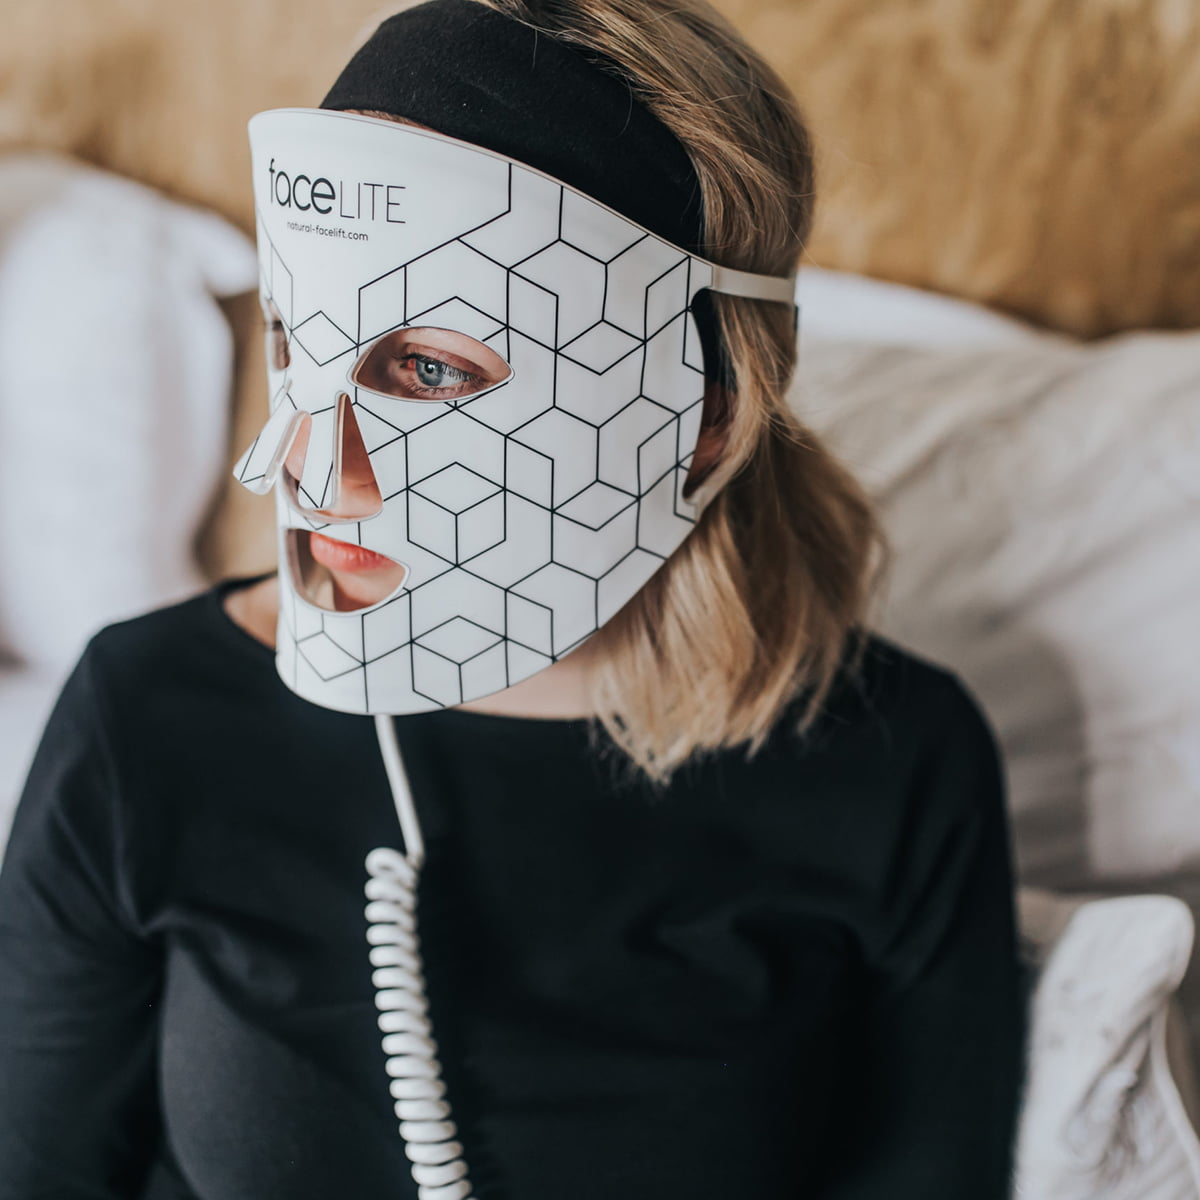 faceLite - The Luxurious LED Face Mask - Beautiful Skin at the touch of a button